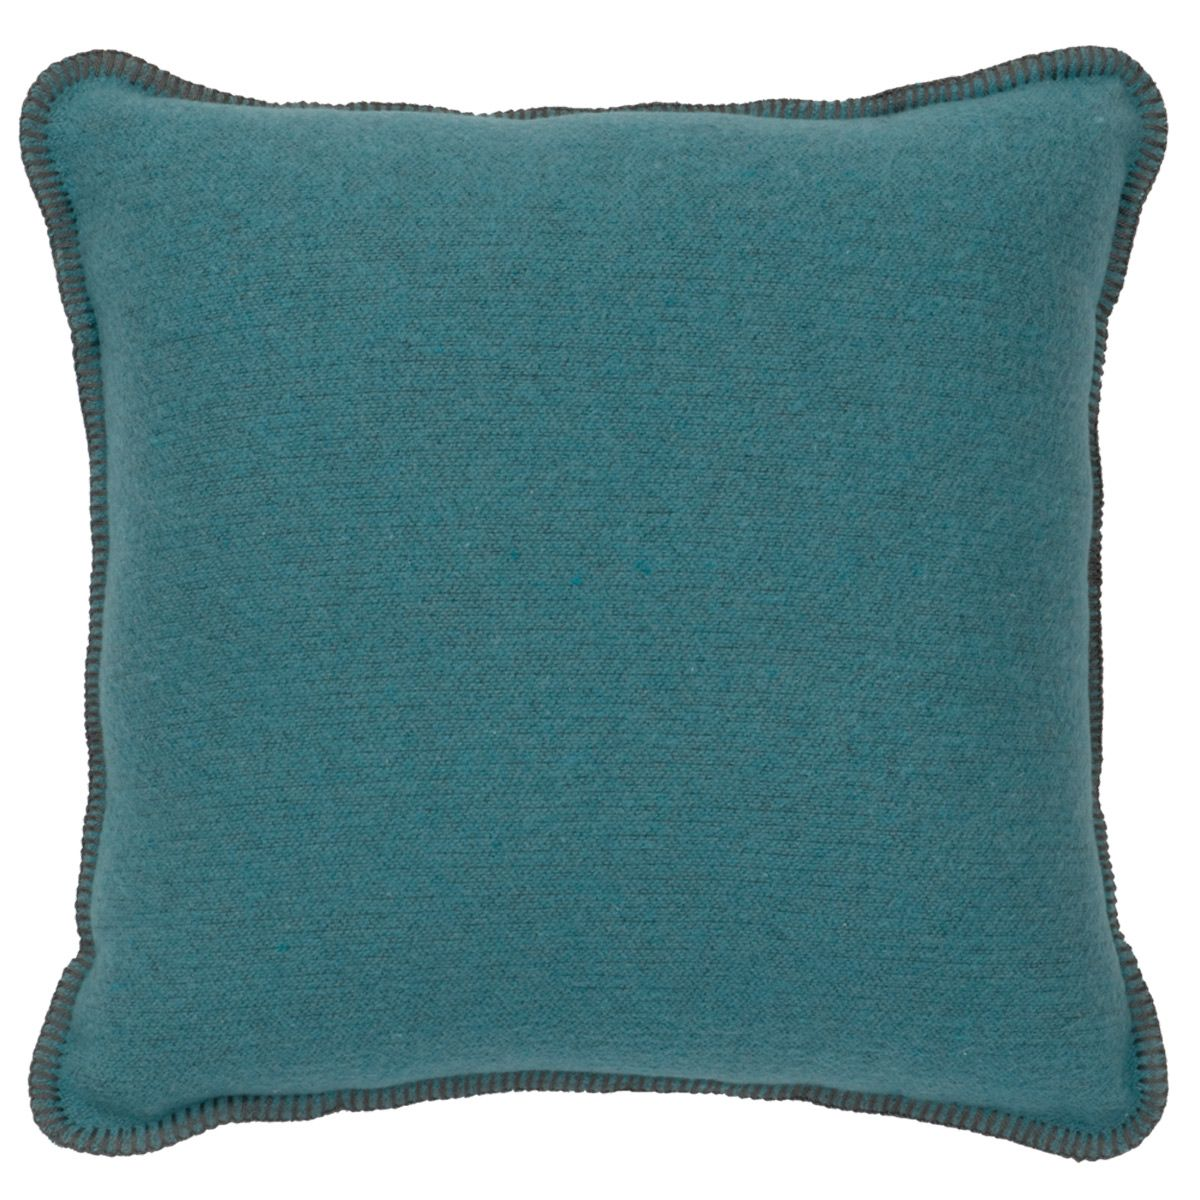 Painted Sky Turquoise Pillow